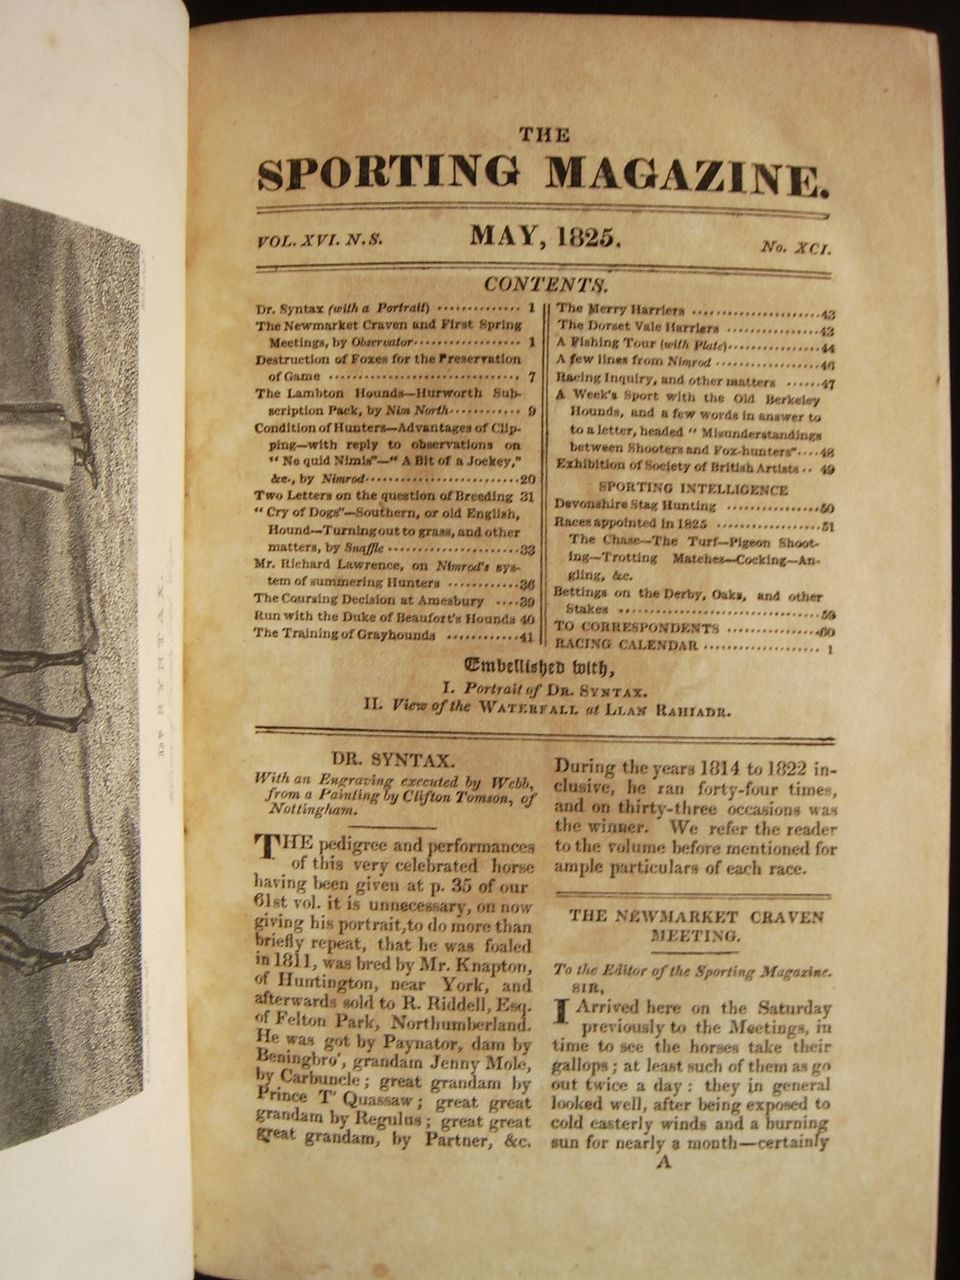 THE SPORTING MAGAZINE, Bound: v.16, by J.Pittman with Nimrod - 1825 [rebacked]